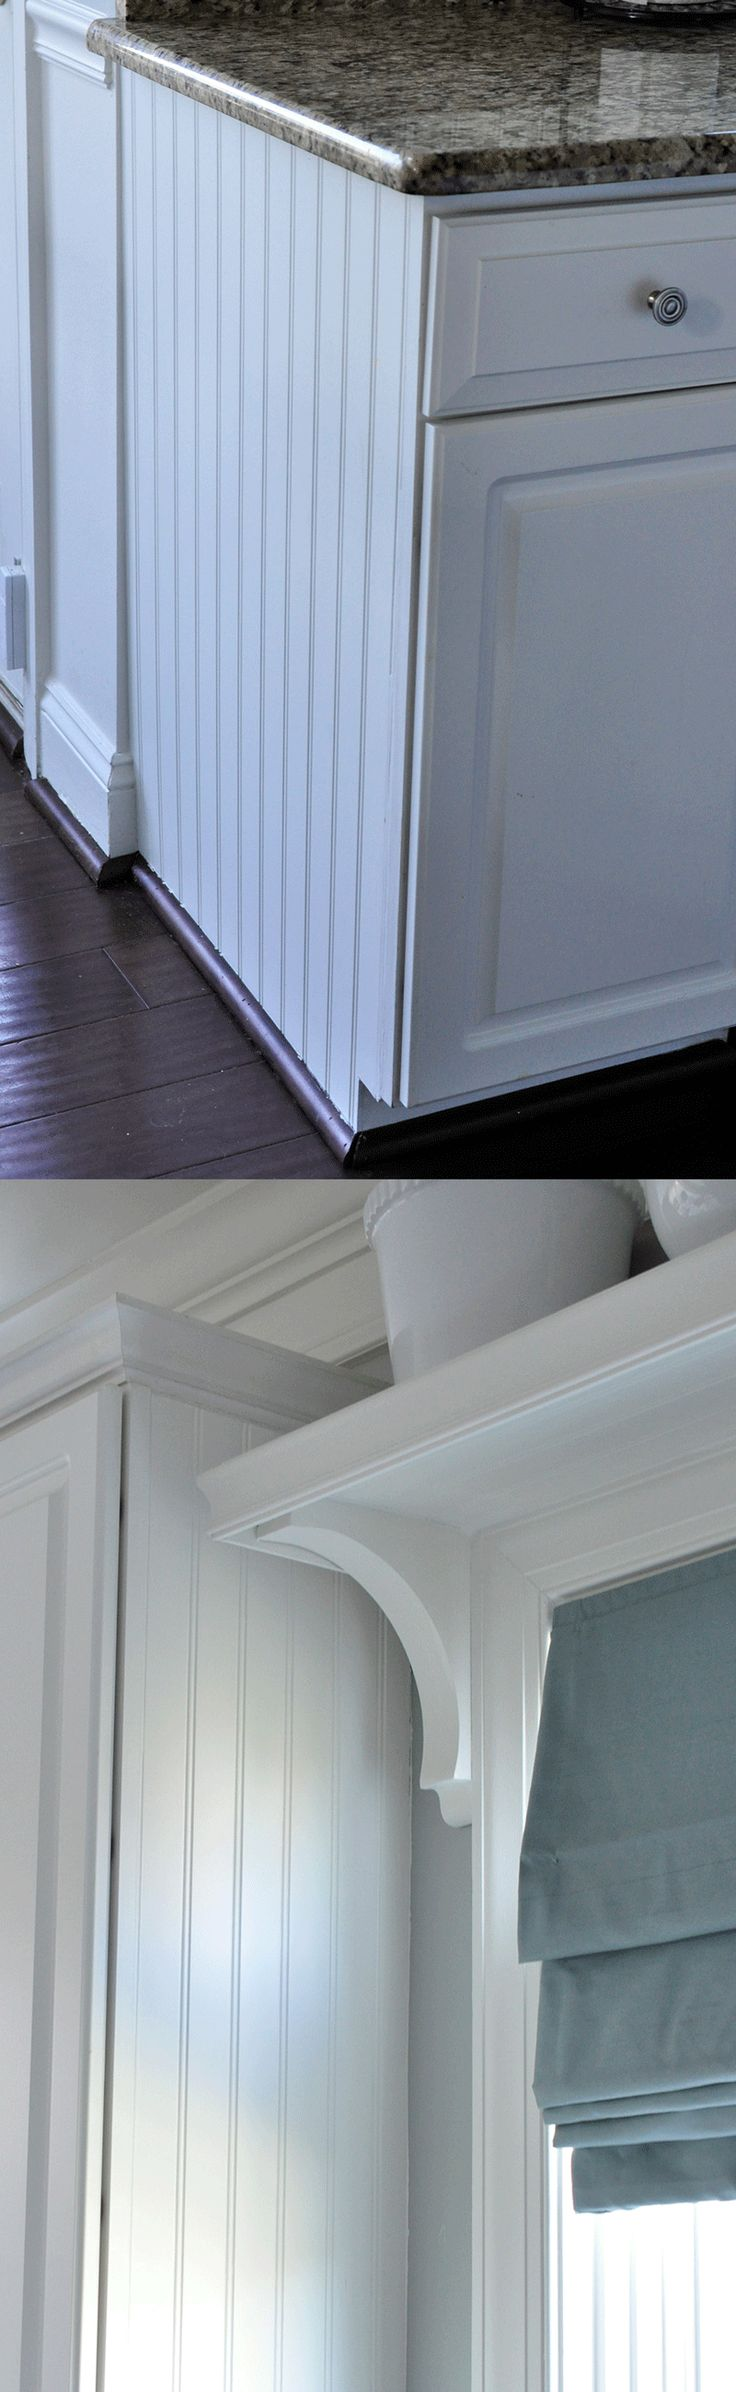 Love the beadboard on the side of the cabinets! Dressing up and finishing the space!